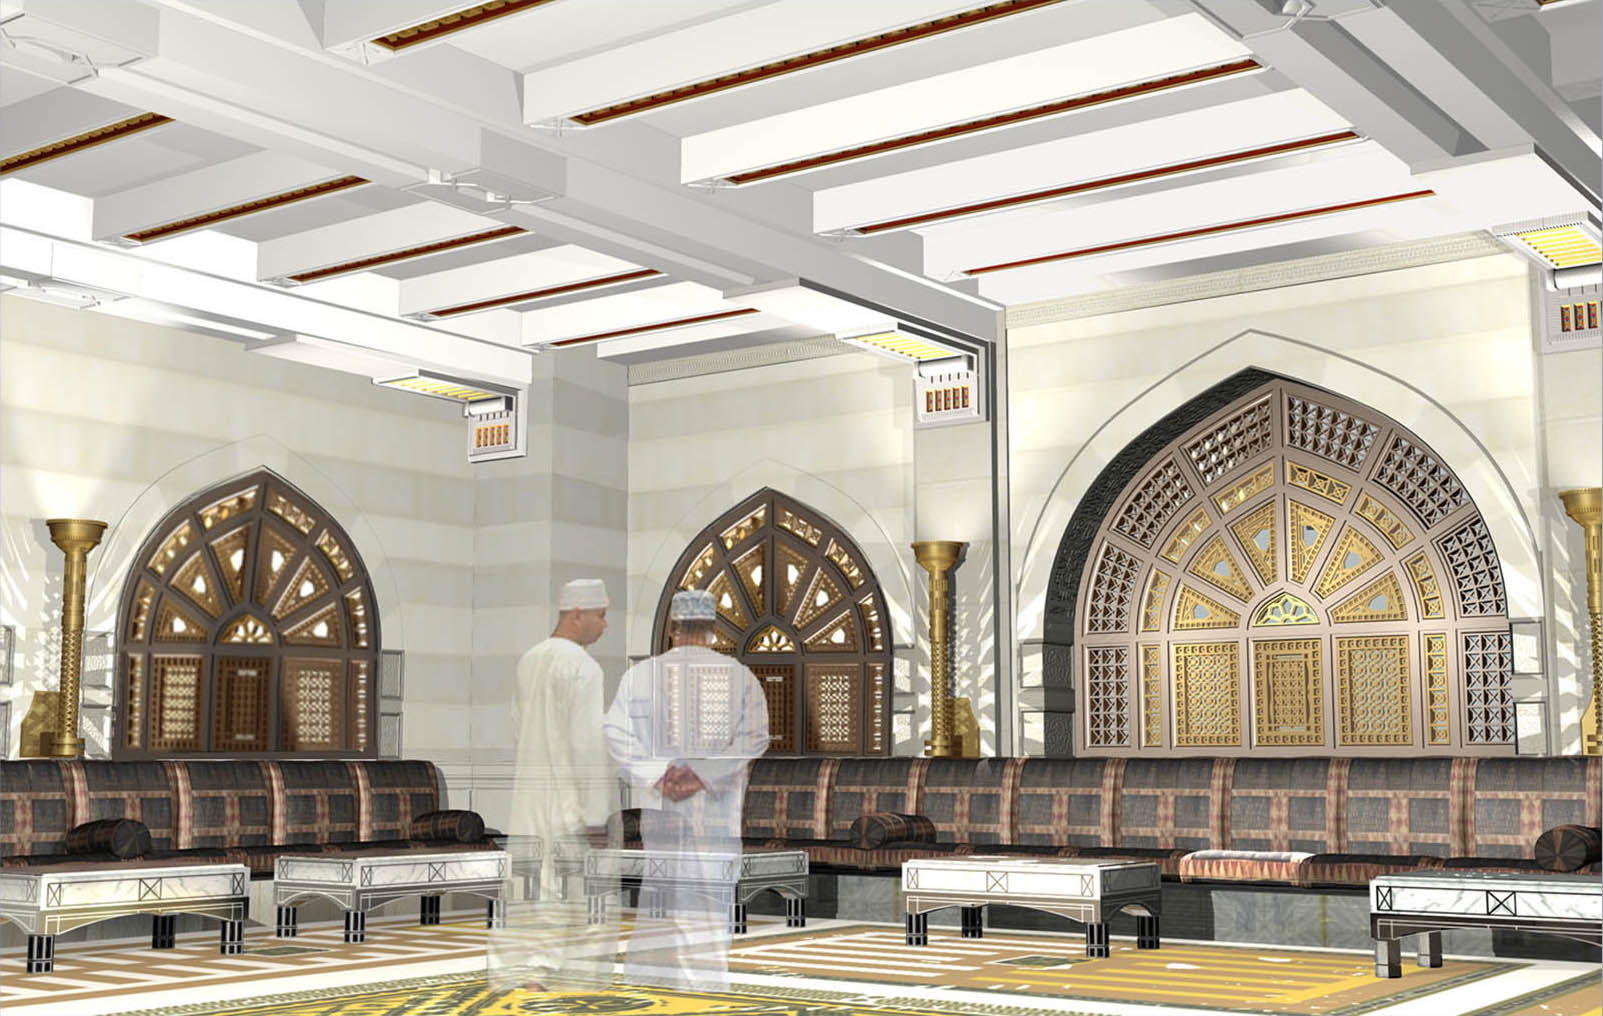 Modern mosque interior design images for Mosque exterior design